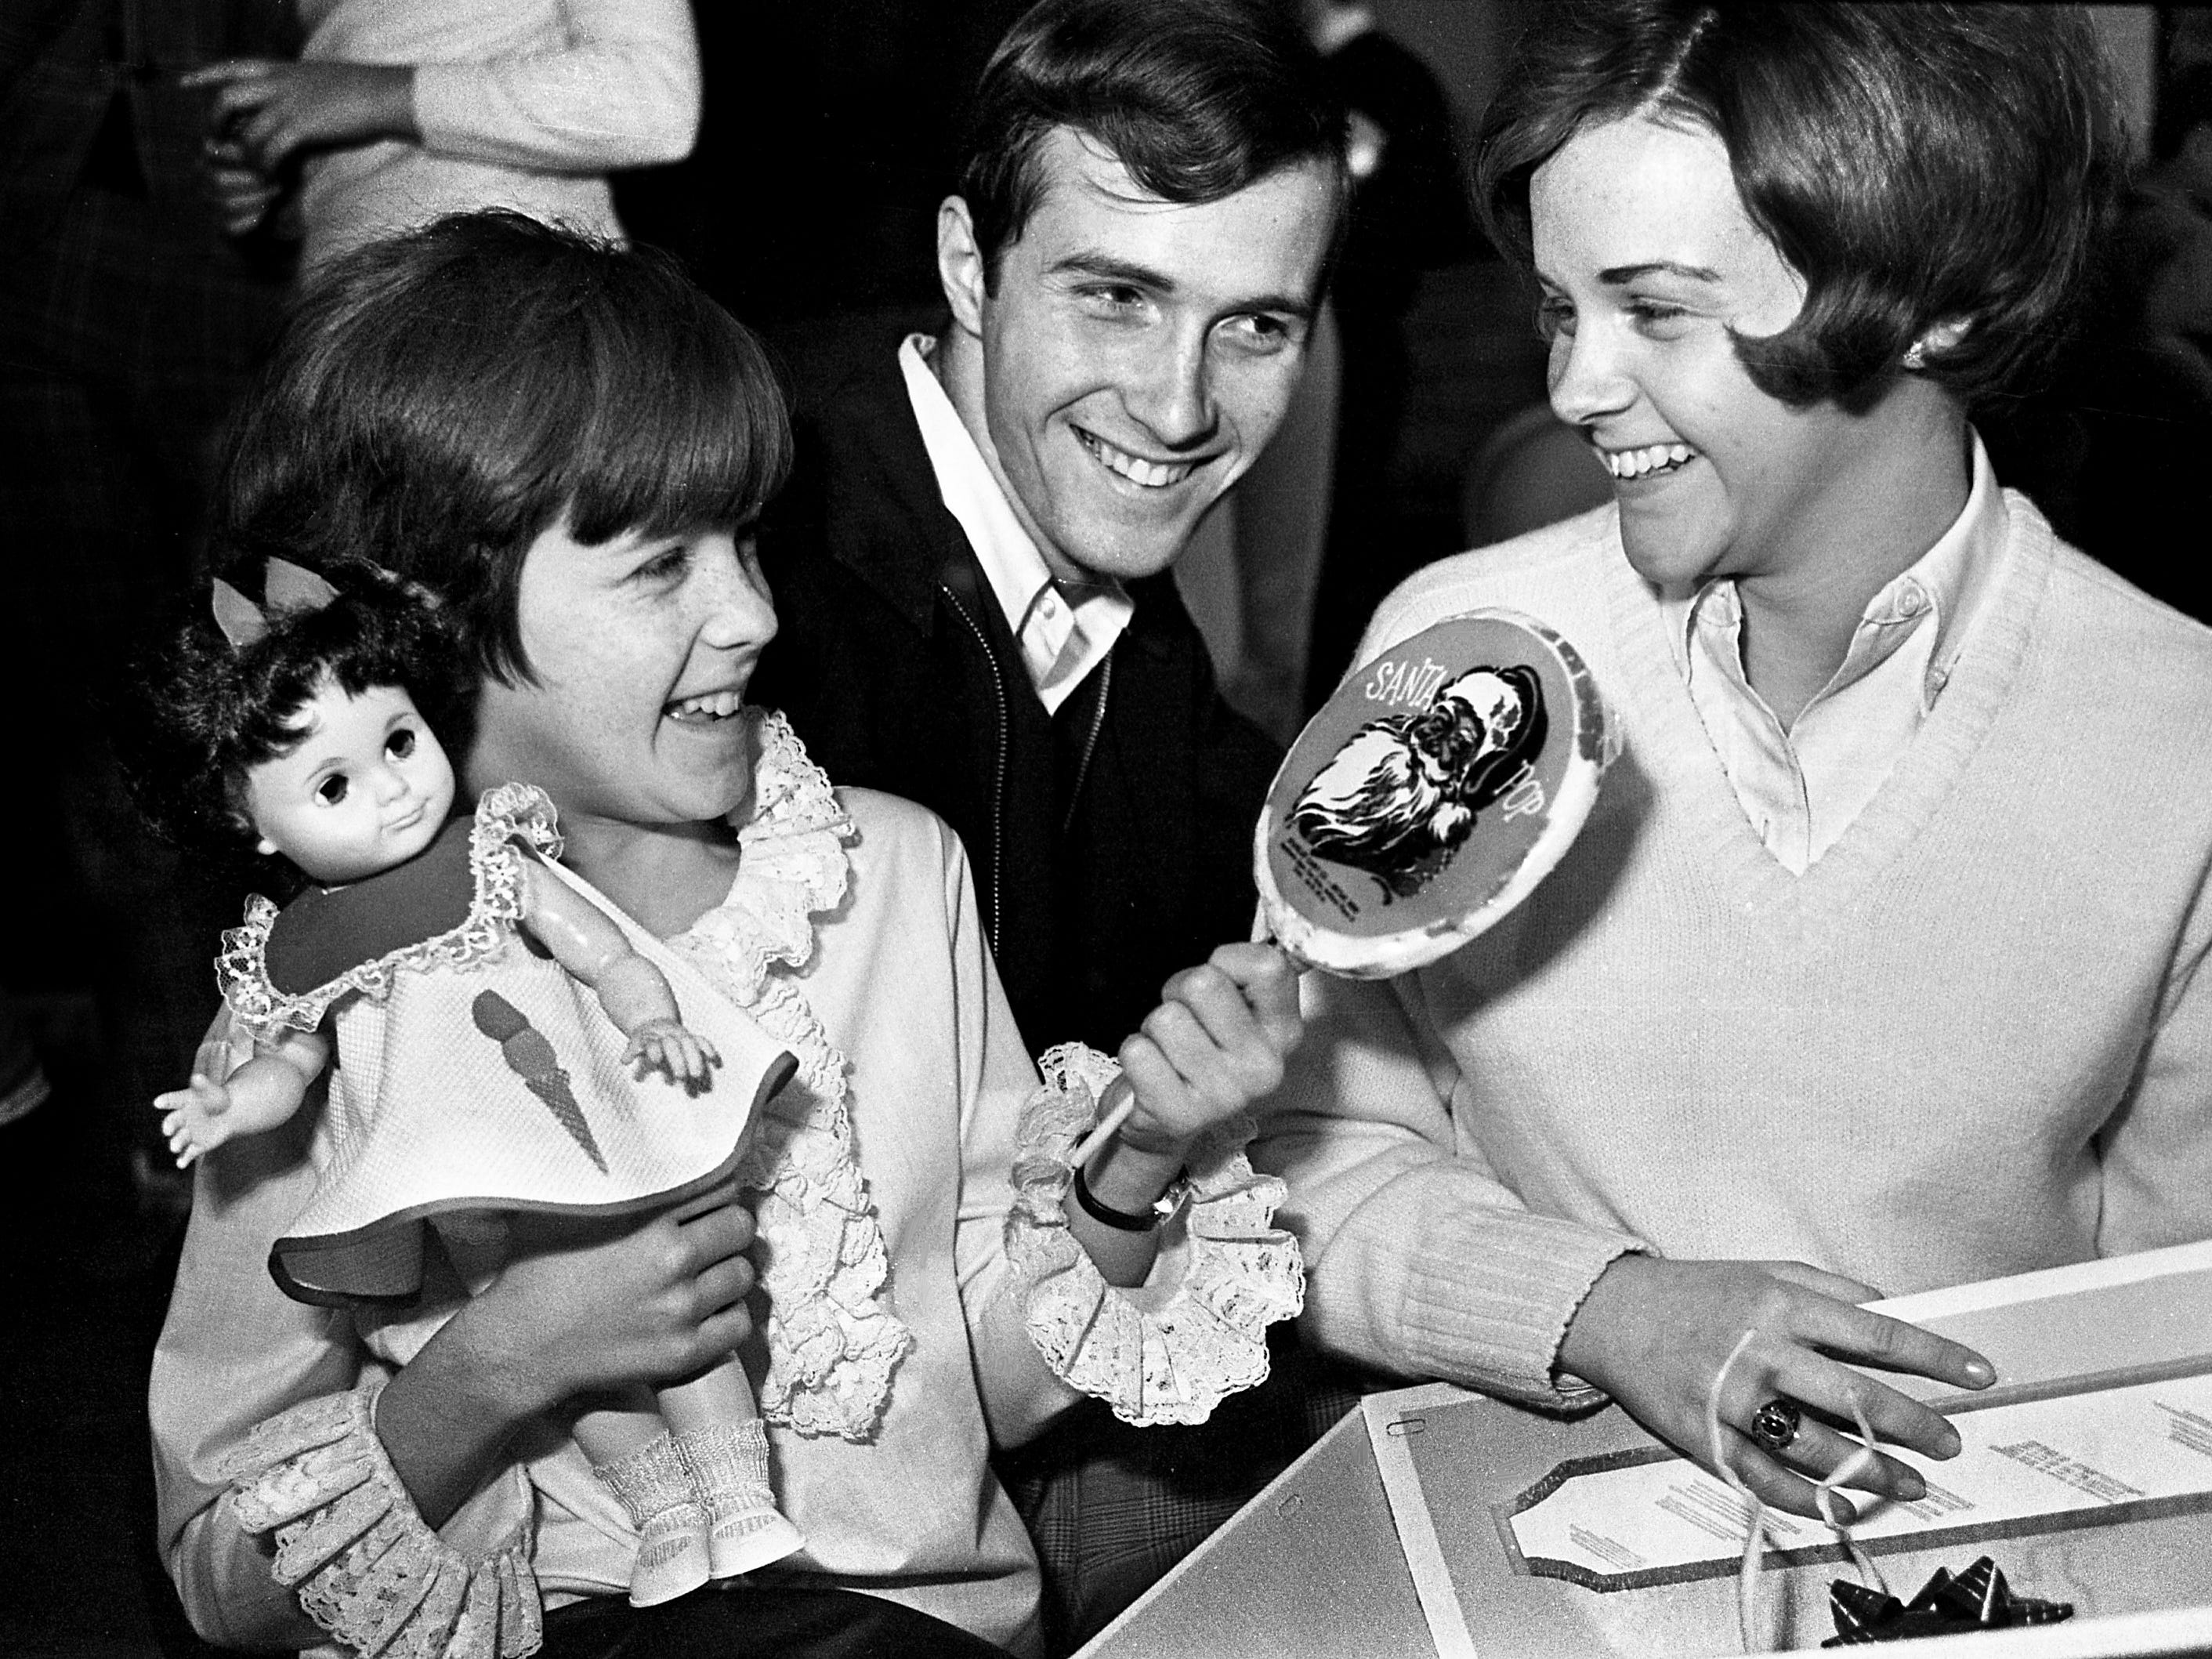 Happily gripping a doll, Nancy Moore, 12, fifth grader at Tennessee Preparatory School, gets a big Christmas sucker from Billy Merritt and Carol Wilson, seniors at East High School, during a Christmas party given by three East High School clubs for TPS youngsters in the East gymnasium Dec. 17, 1968.